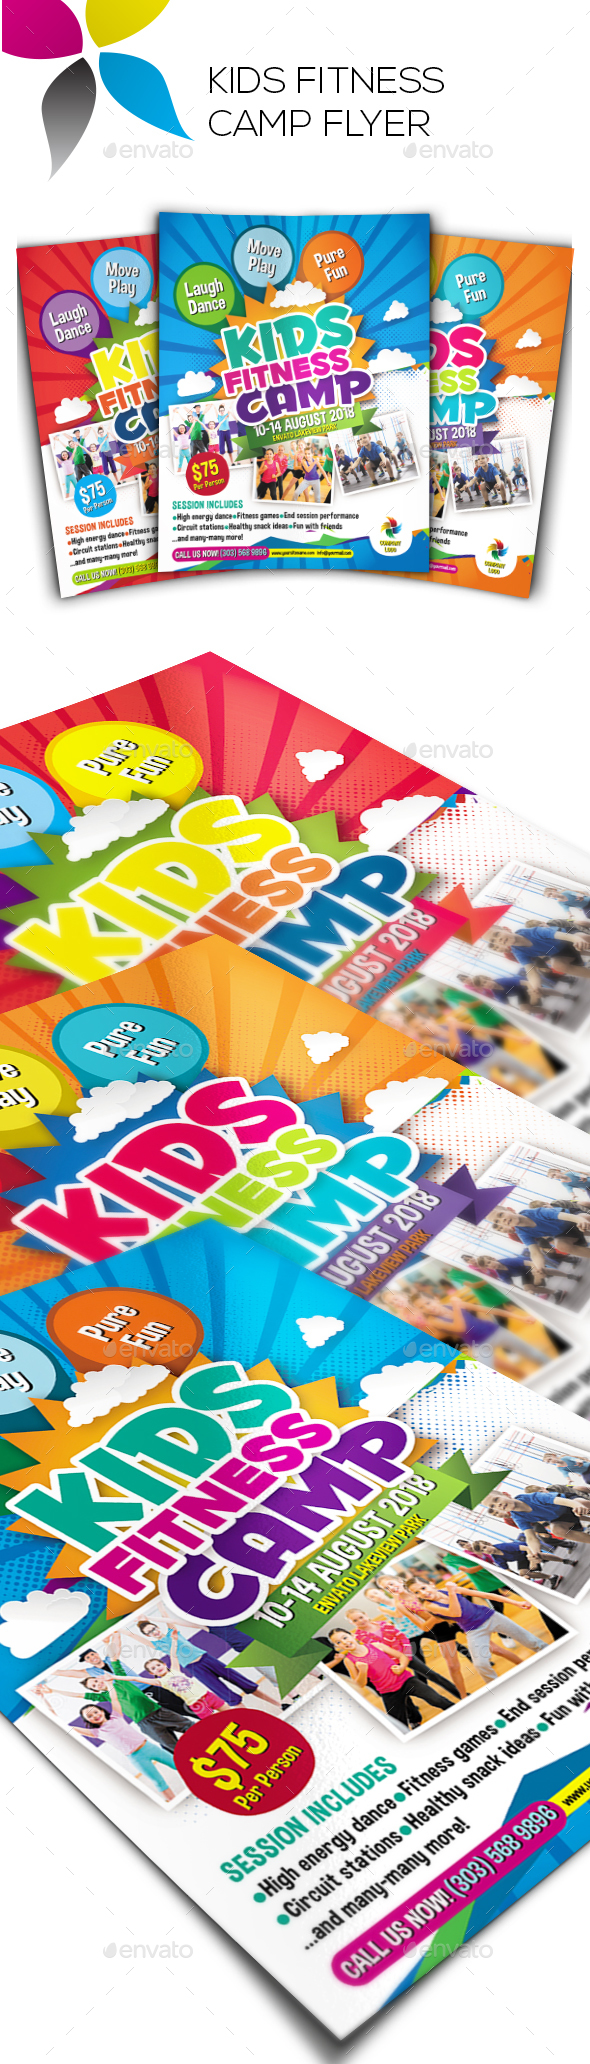 Kids Fitness Camp Flyer